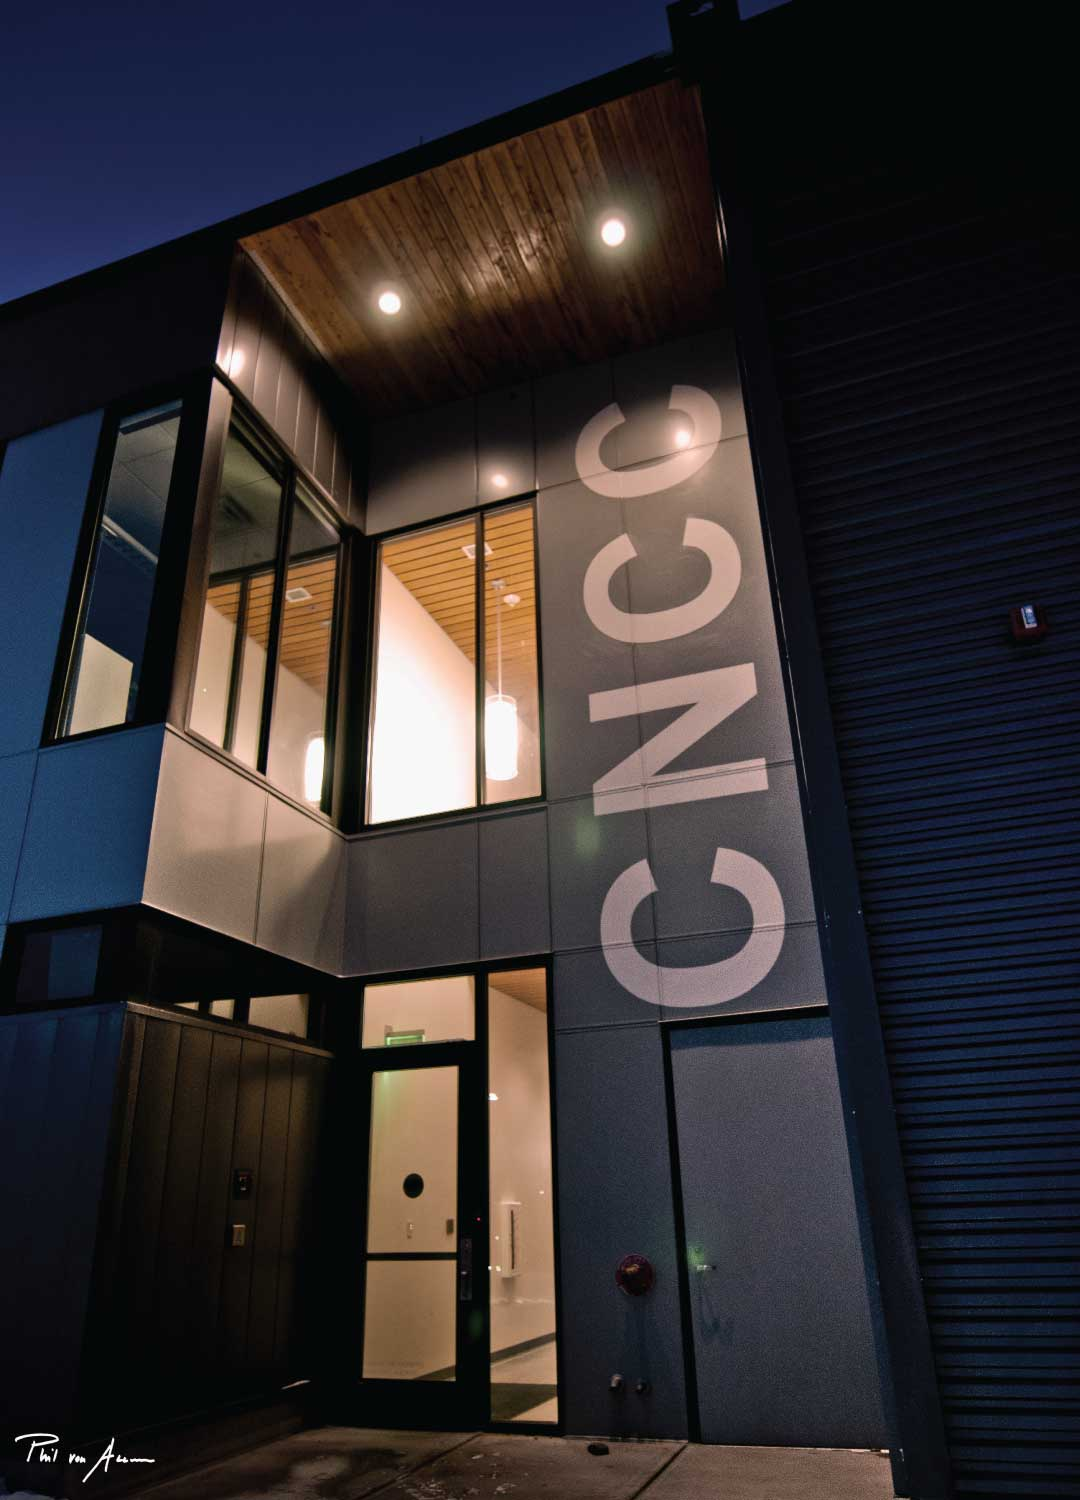 Entrance to CNCC building lit up at night.